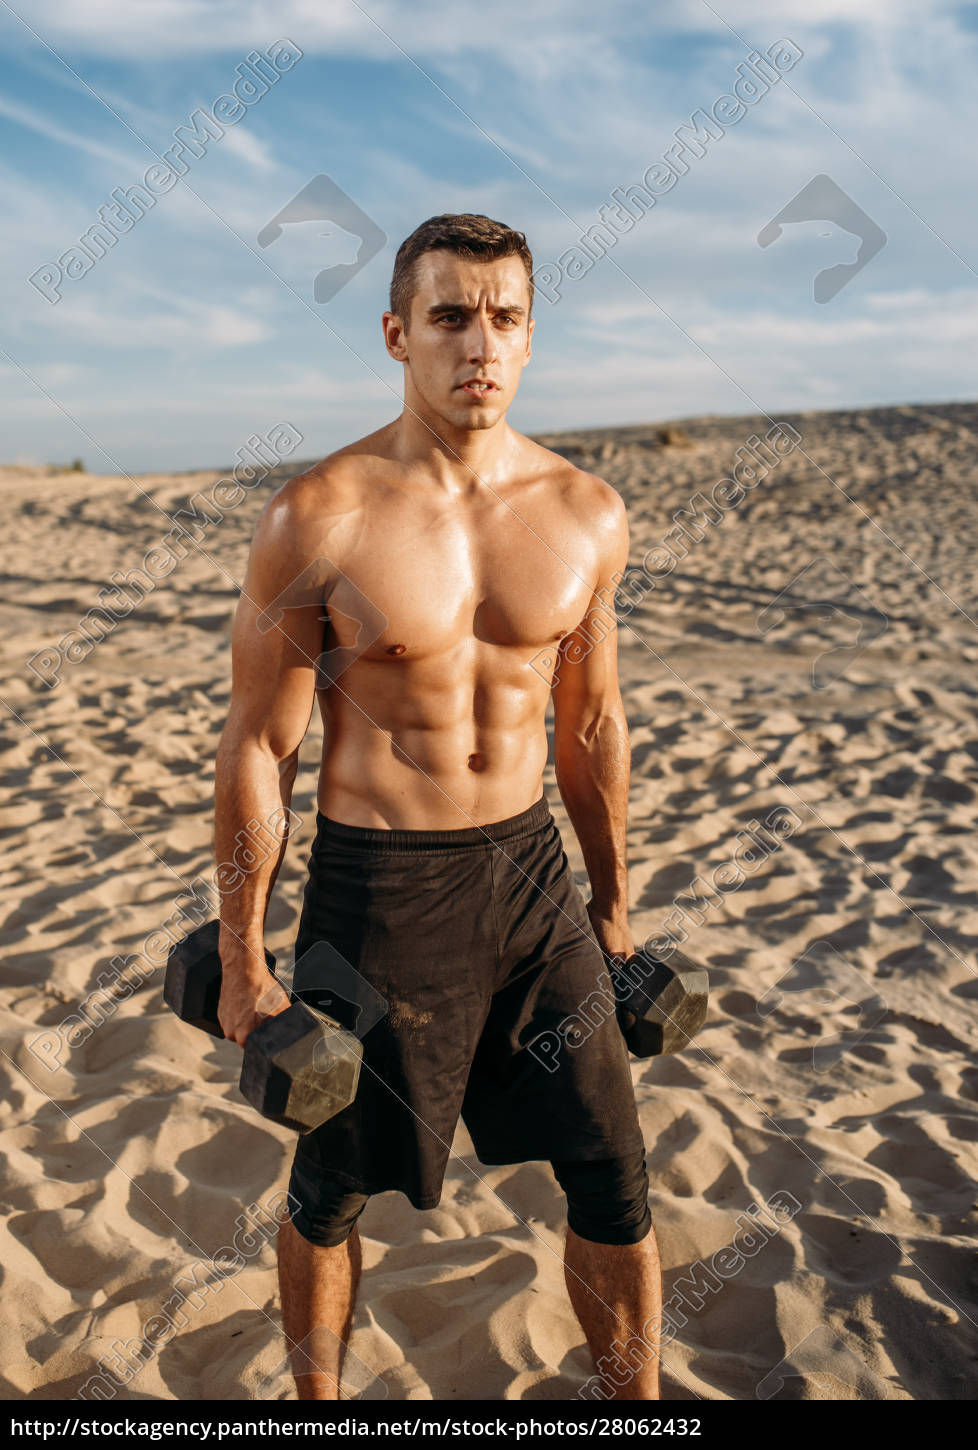 muscular, male, athlete, with, dumbbells, in - 28062432